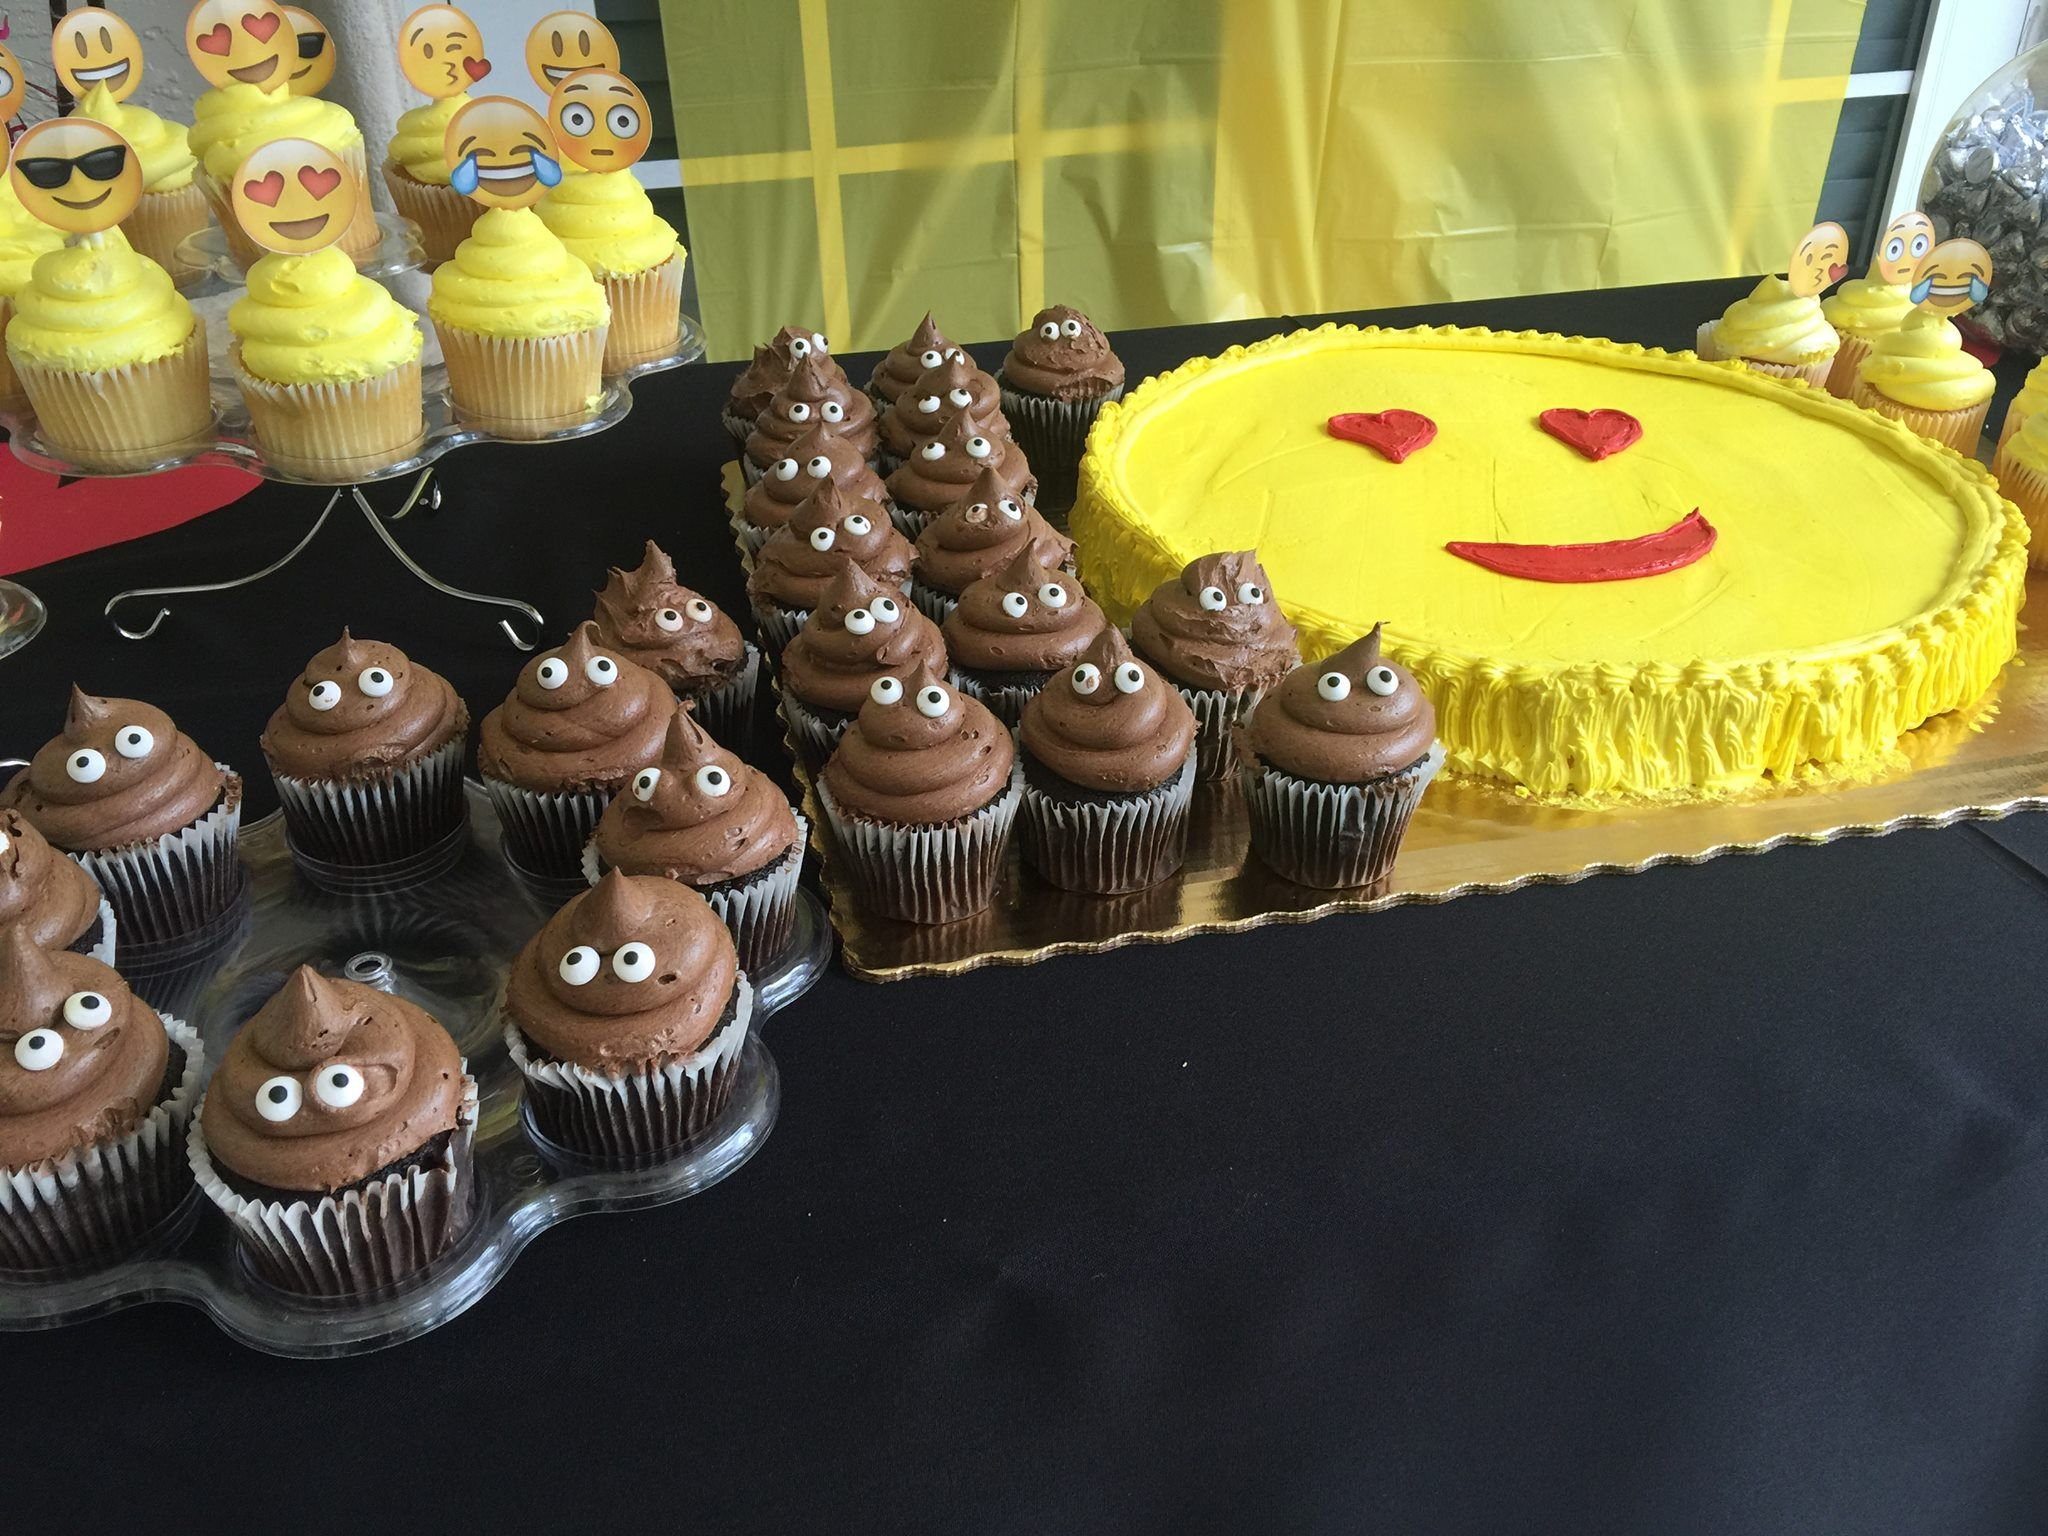 Emoji Party Ideas Publix Cookie Cake And Cup Cakes City Cupcake Eyes Amazon Balloons Toppers